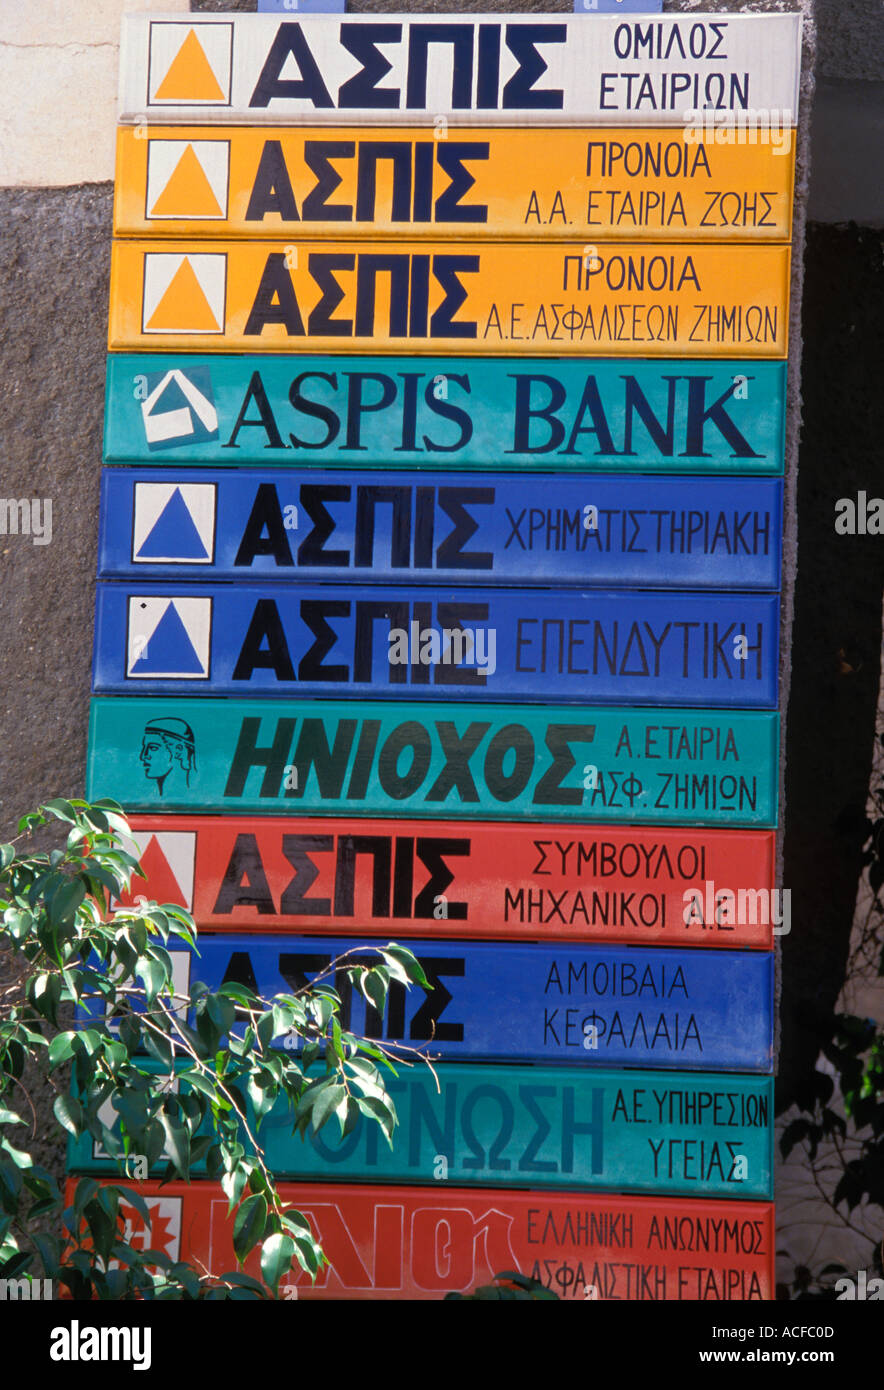 Greek language signs of various businesses in yellow blue red turquoise on isle of Poros on the Peloponnesus of  Greece Europe - Stock Image